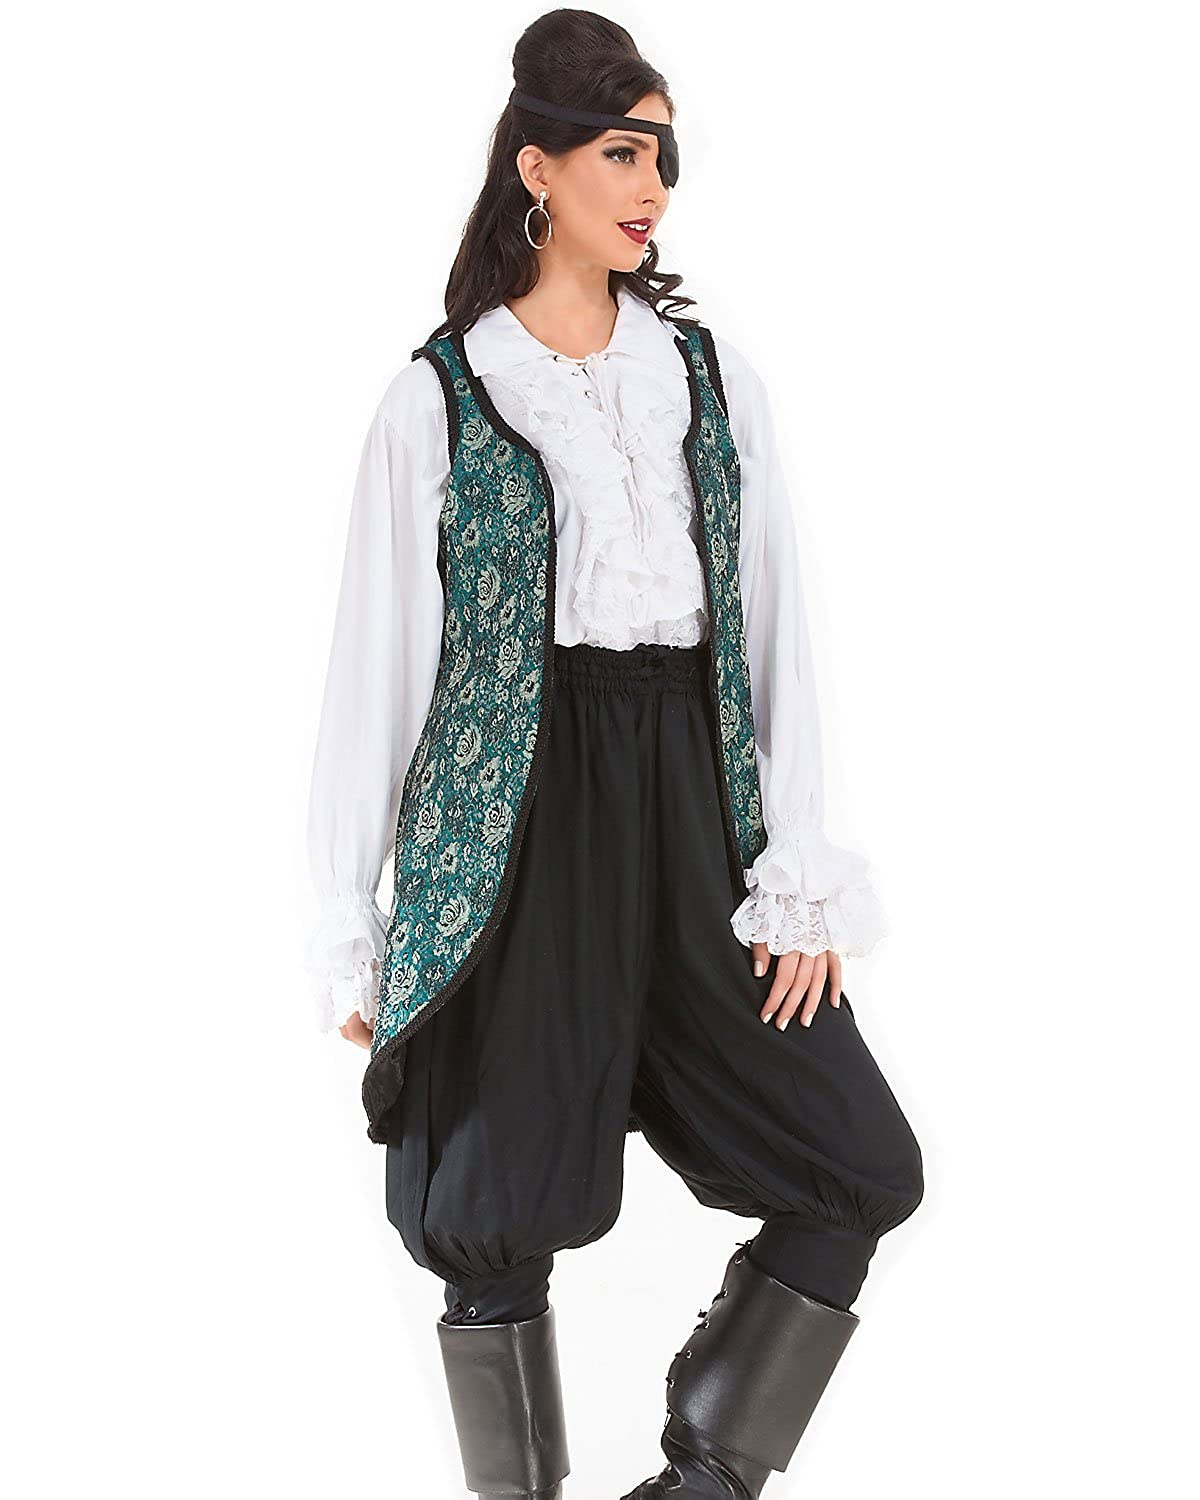 Lady pirate coats jackets and vests deluxe theatrical quality womens angelica brocade pirate costume vest deluxeadultcostumes solutioingenieria Gallery